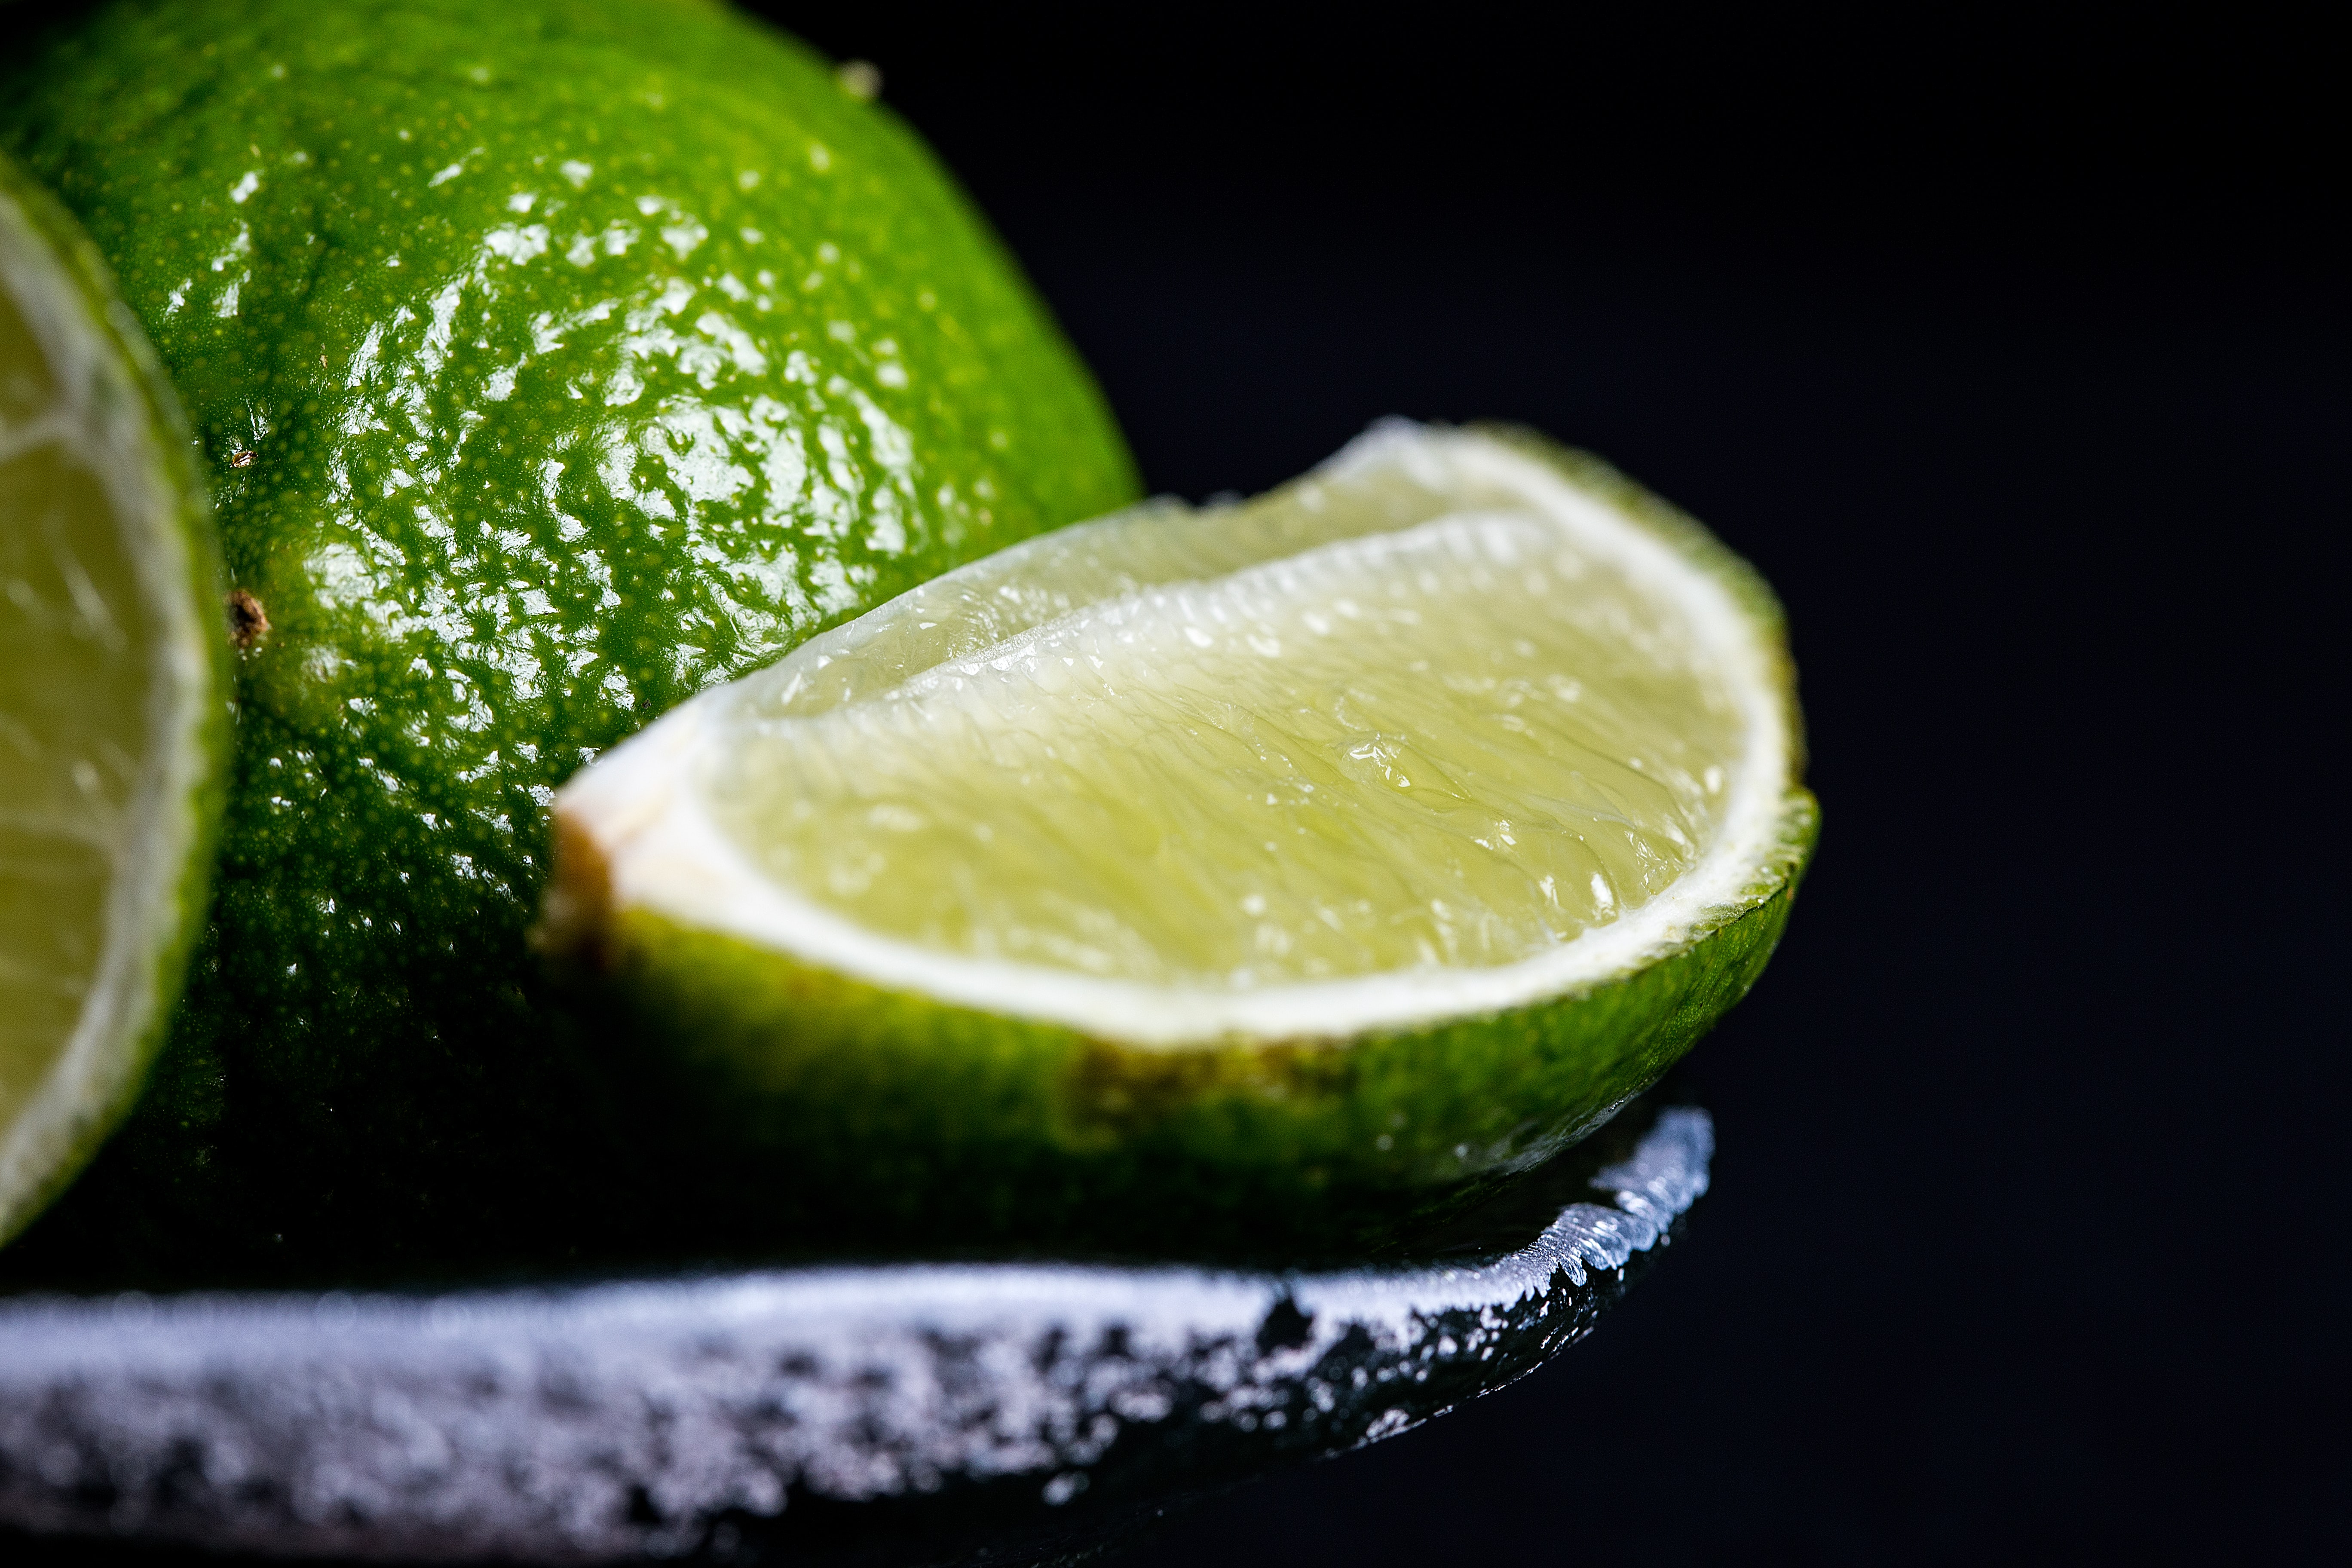 Slices of fresh lime in a bowl on a black backdrop